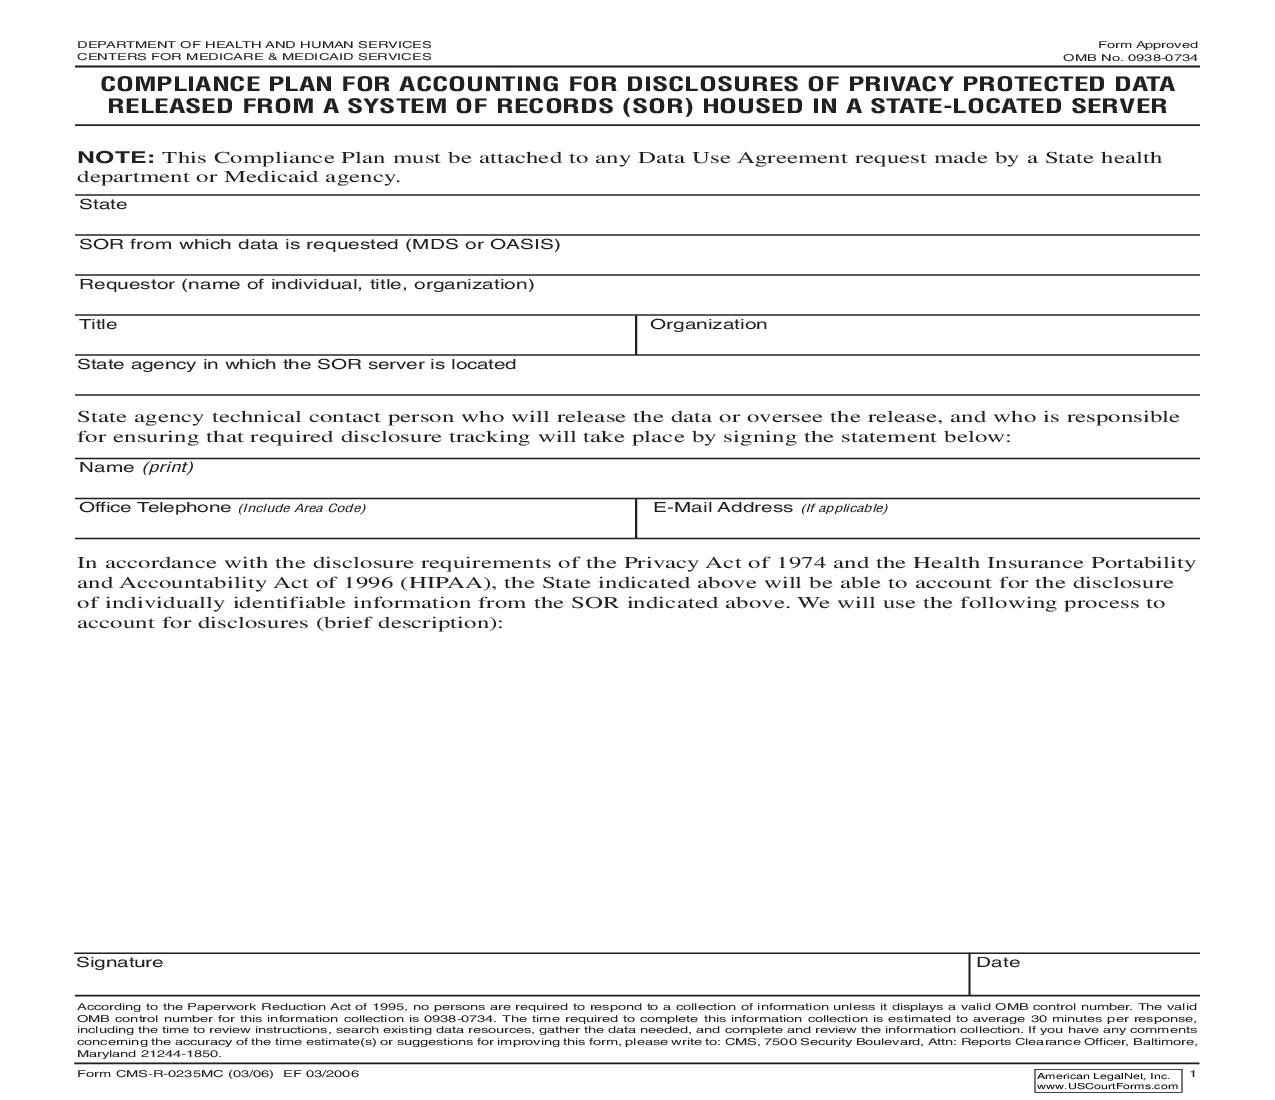 Compliance Plan For Accounting For Disclosures Of Privacy Protected Data From A System Of Records (SOR) {CMS-R-0235MC} | Pdf Fpdf Doc Docx | Official Federal Forms